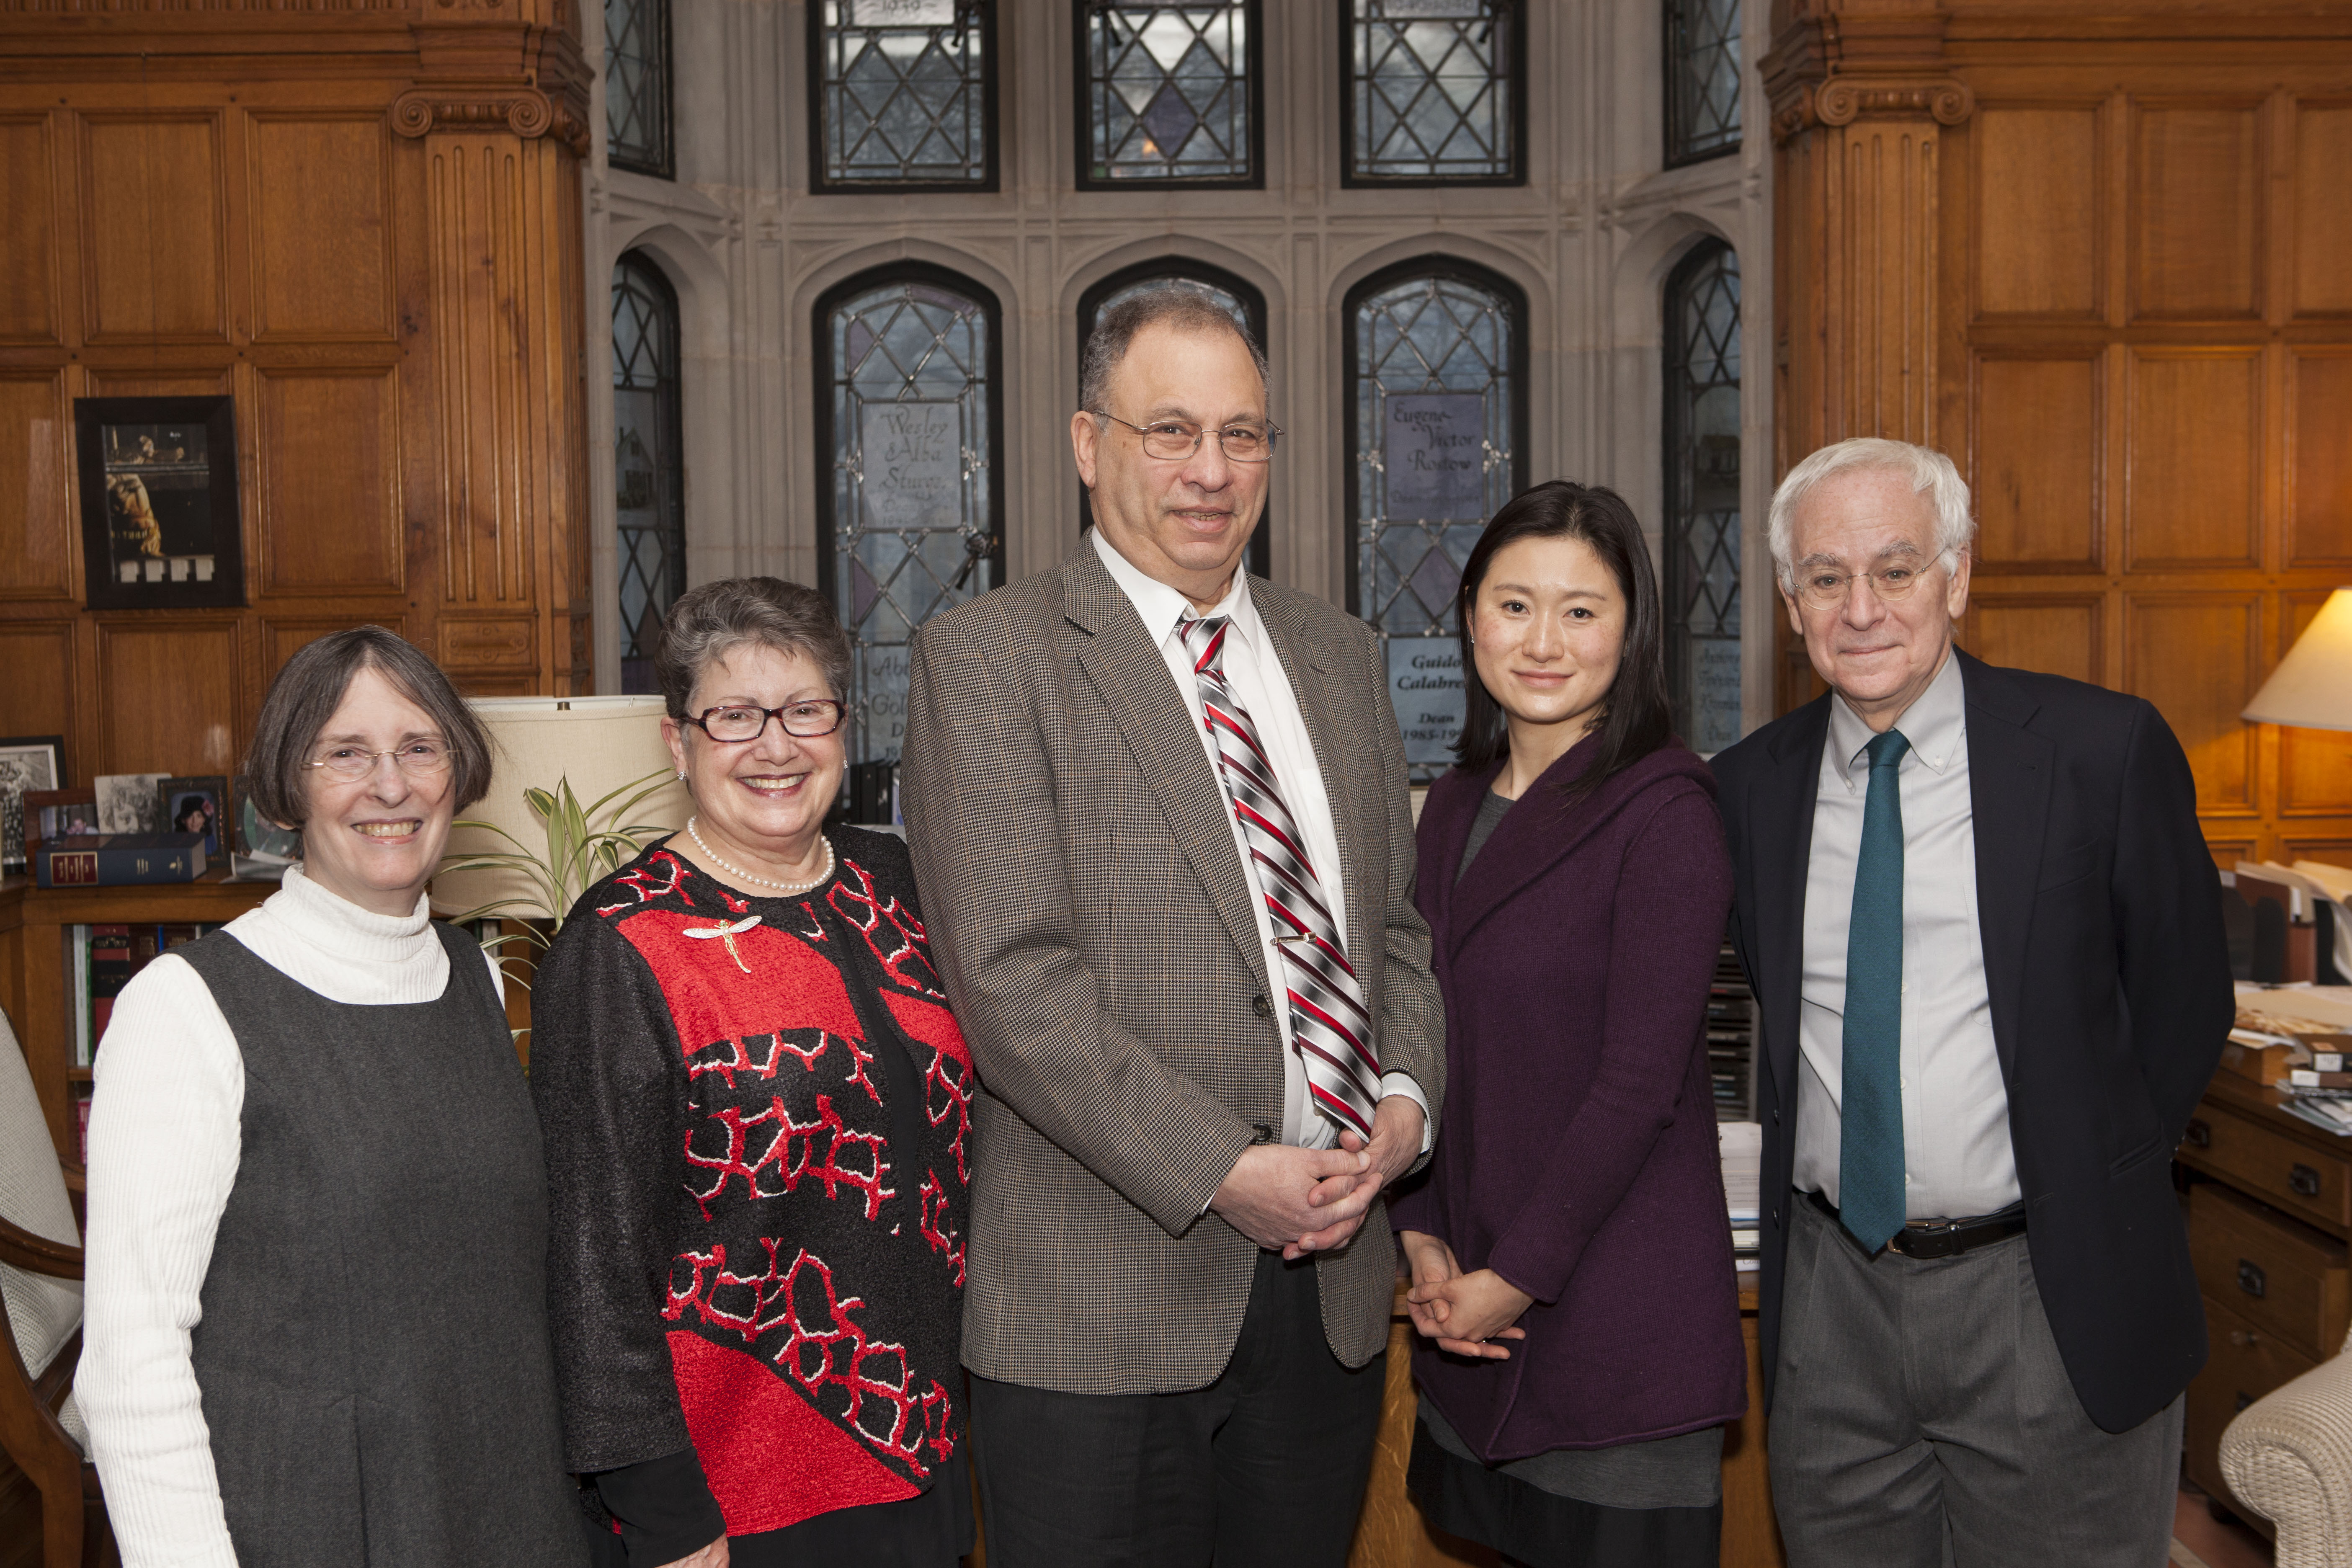 YLS Prof. and Center Dir. Roberta Romano '80, Carole Levin, Princeton Ecology and Evolutionary Biology Prof. Simon Levin, Nancy Liao '05, and YLS Dean Robert Post '77